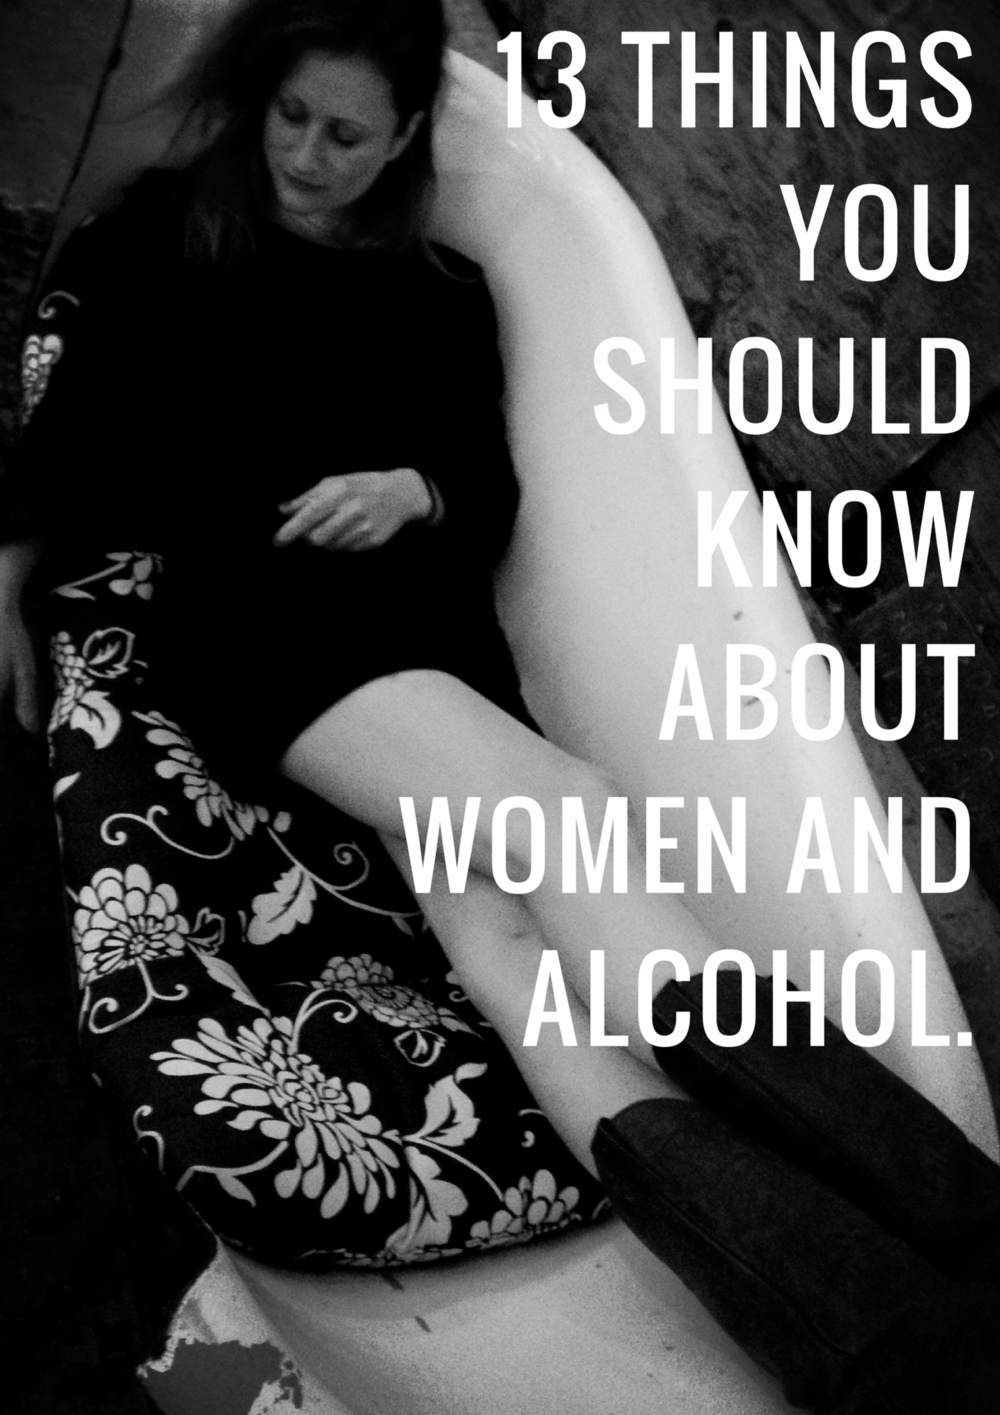 13 THINGS YOU SHOULD KNOW ABOUT WOMEN AND ALCOHOL